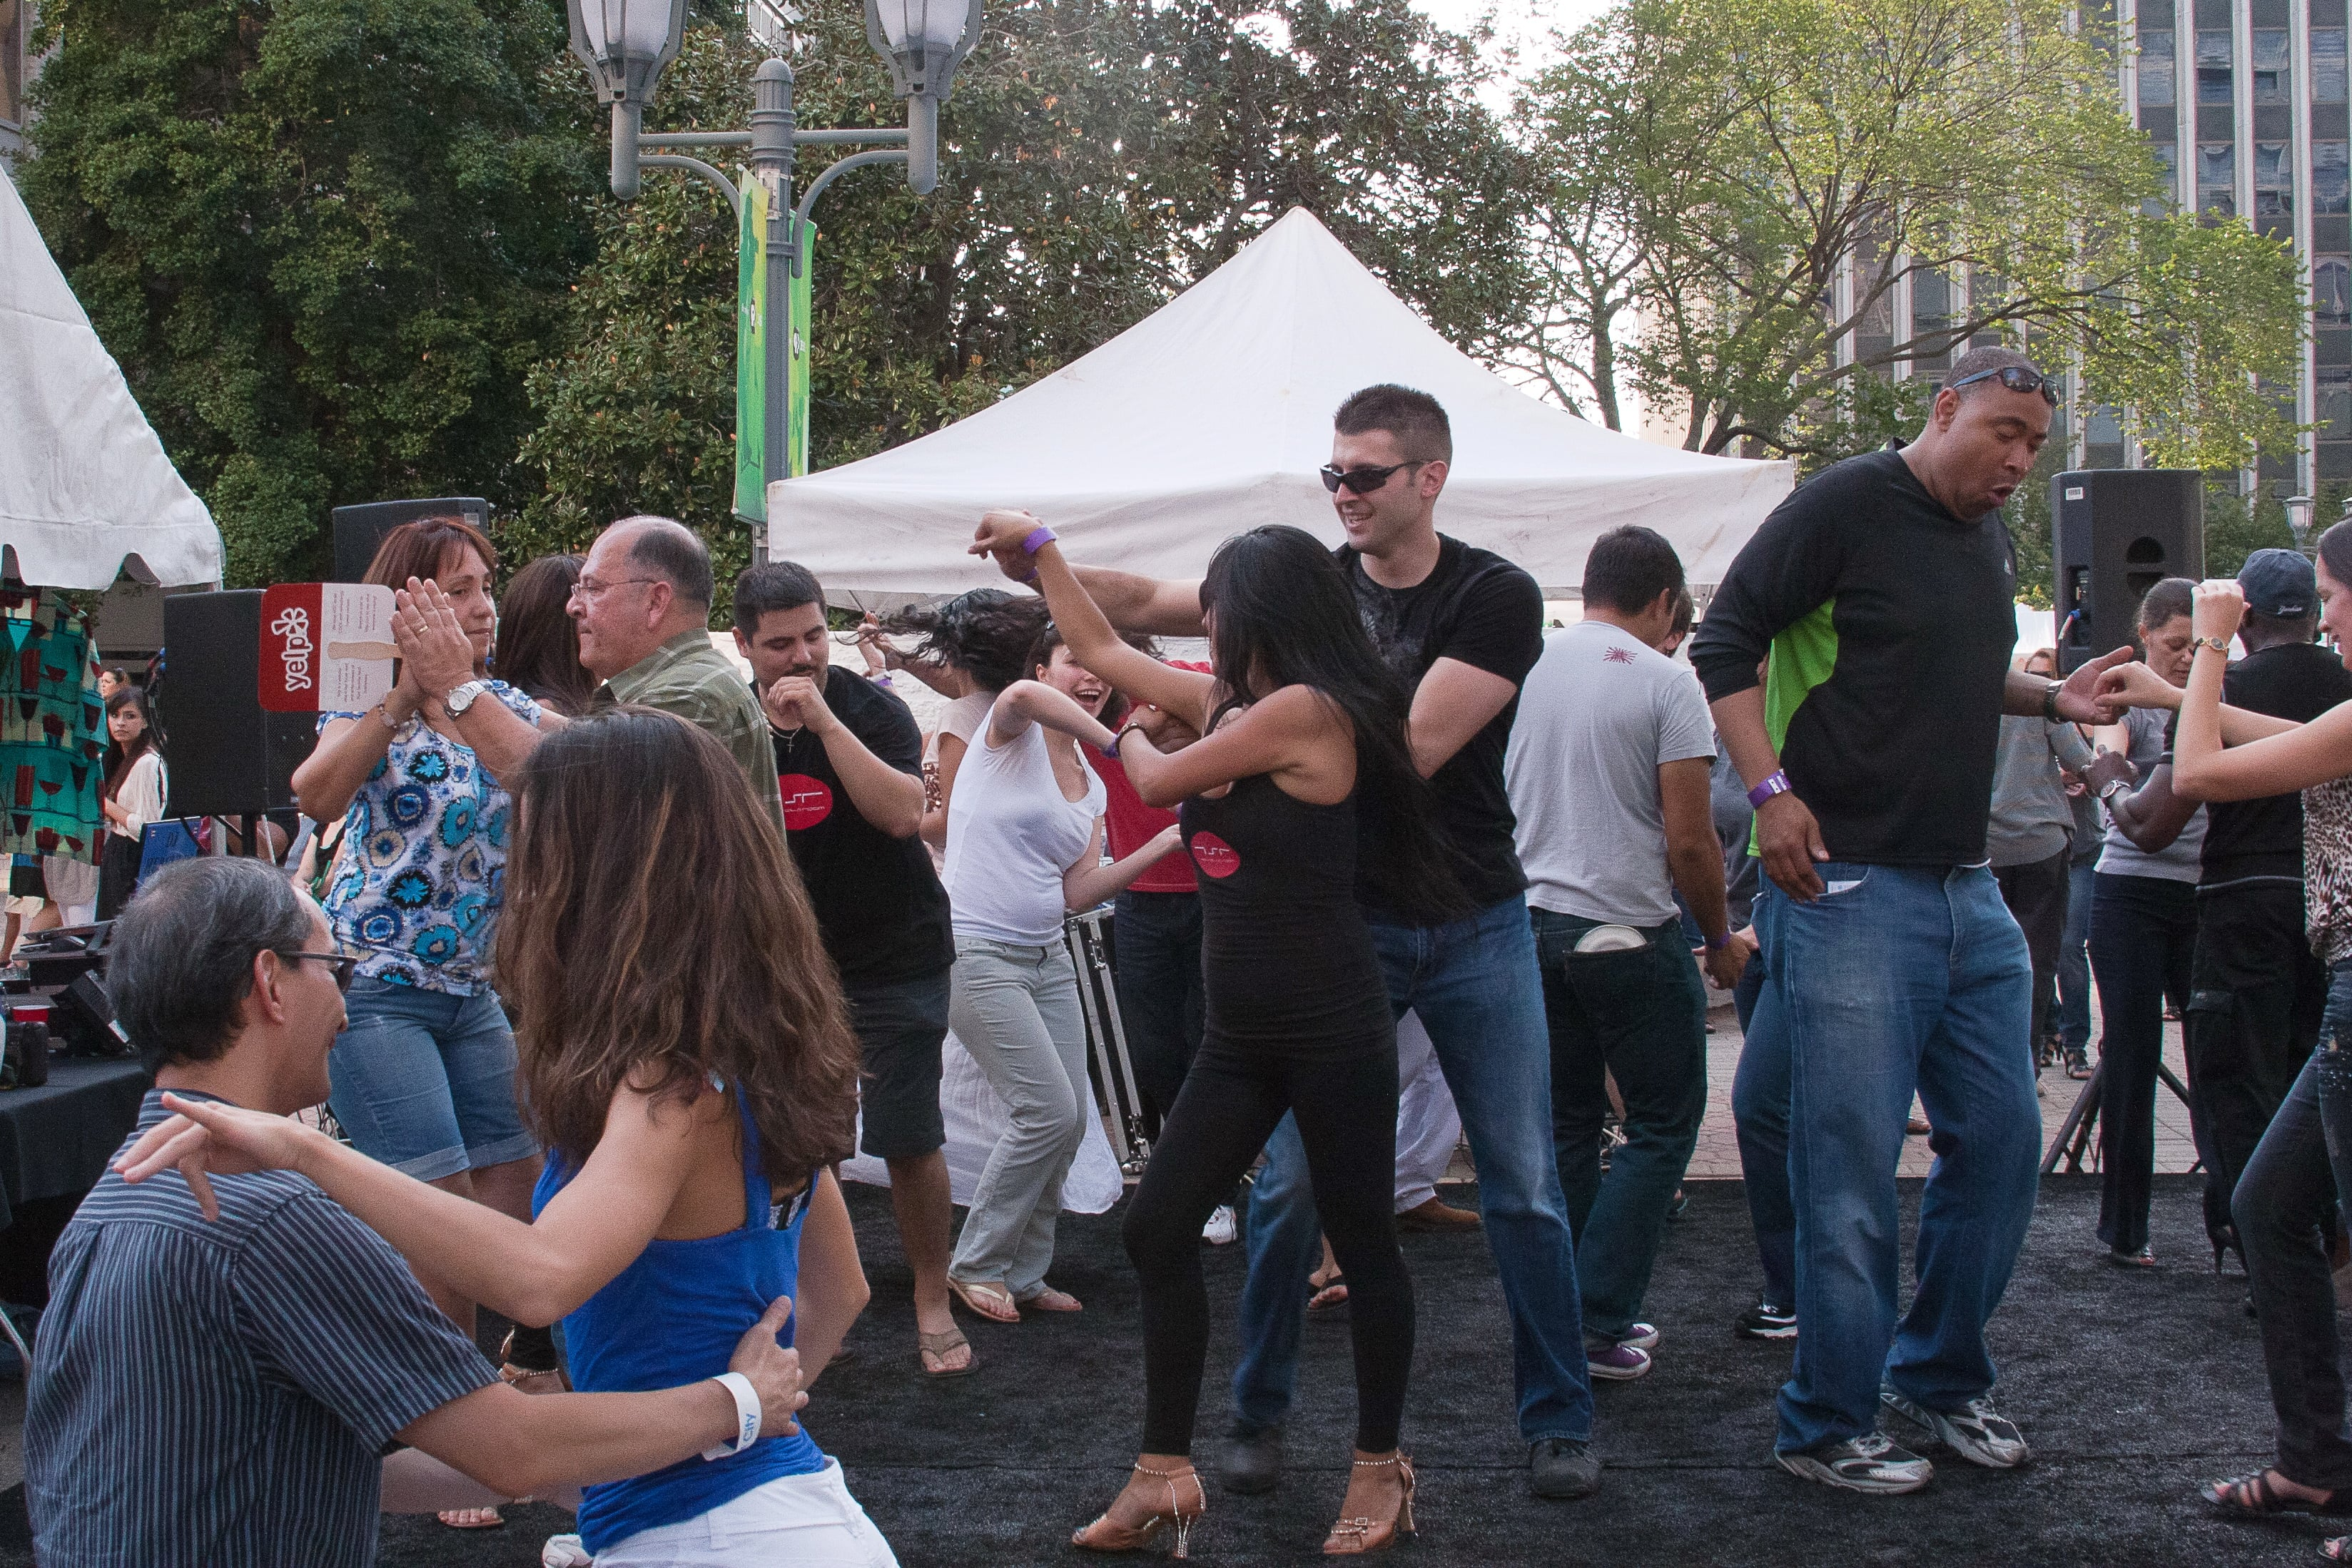 Rumba dances that come from Cuba